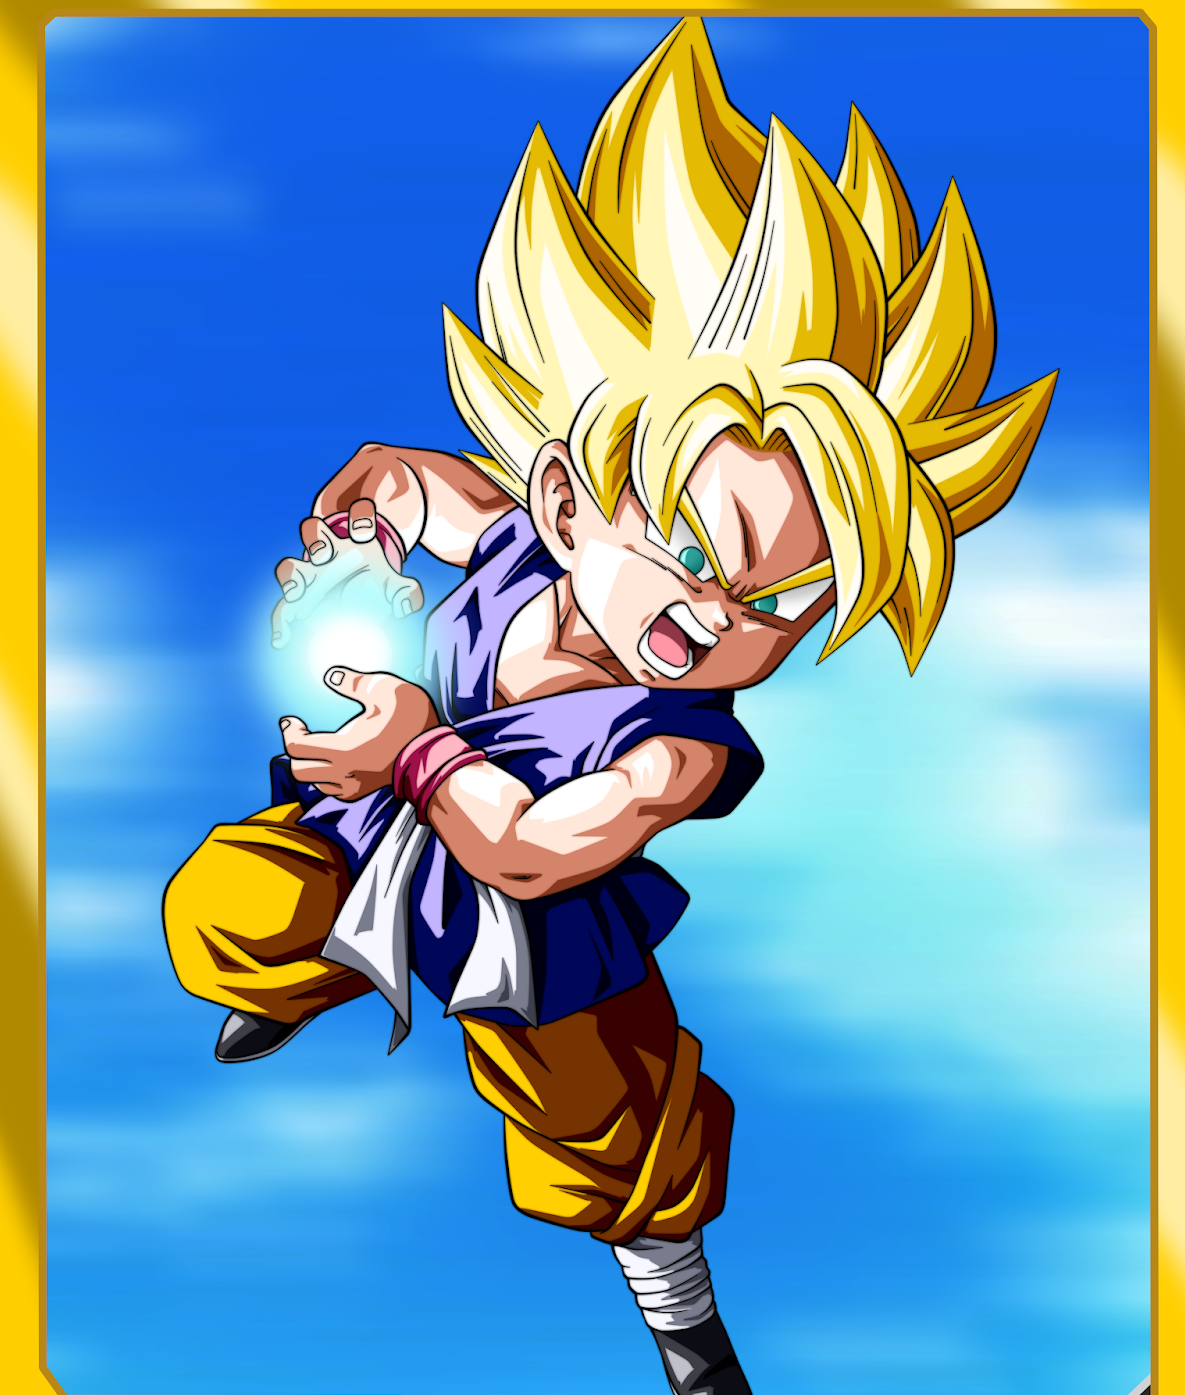 (Dragon Ball GT) Son Goku 'Super Saiyan'